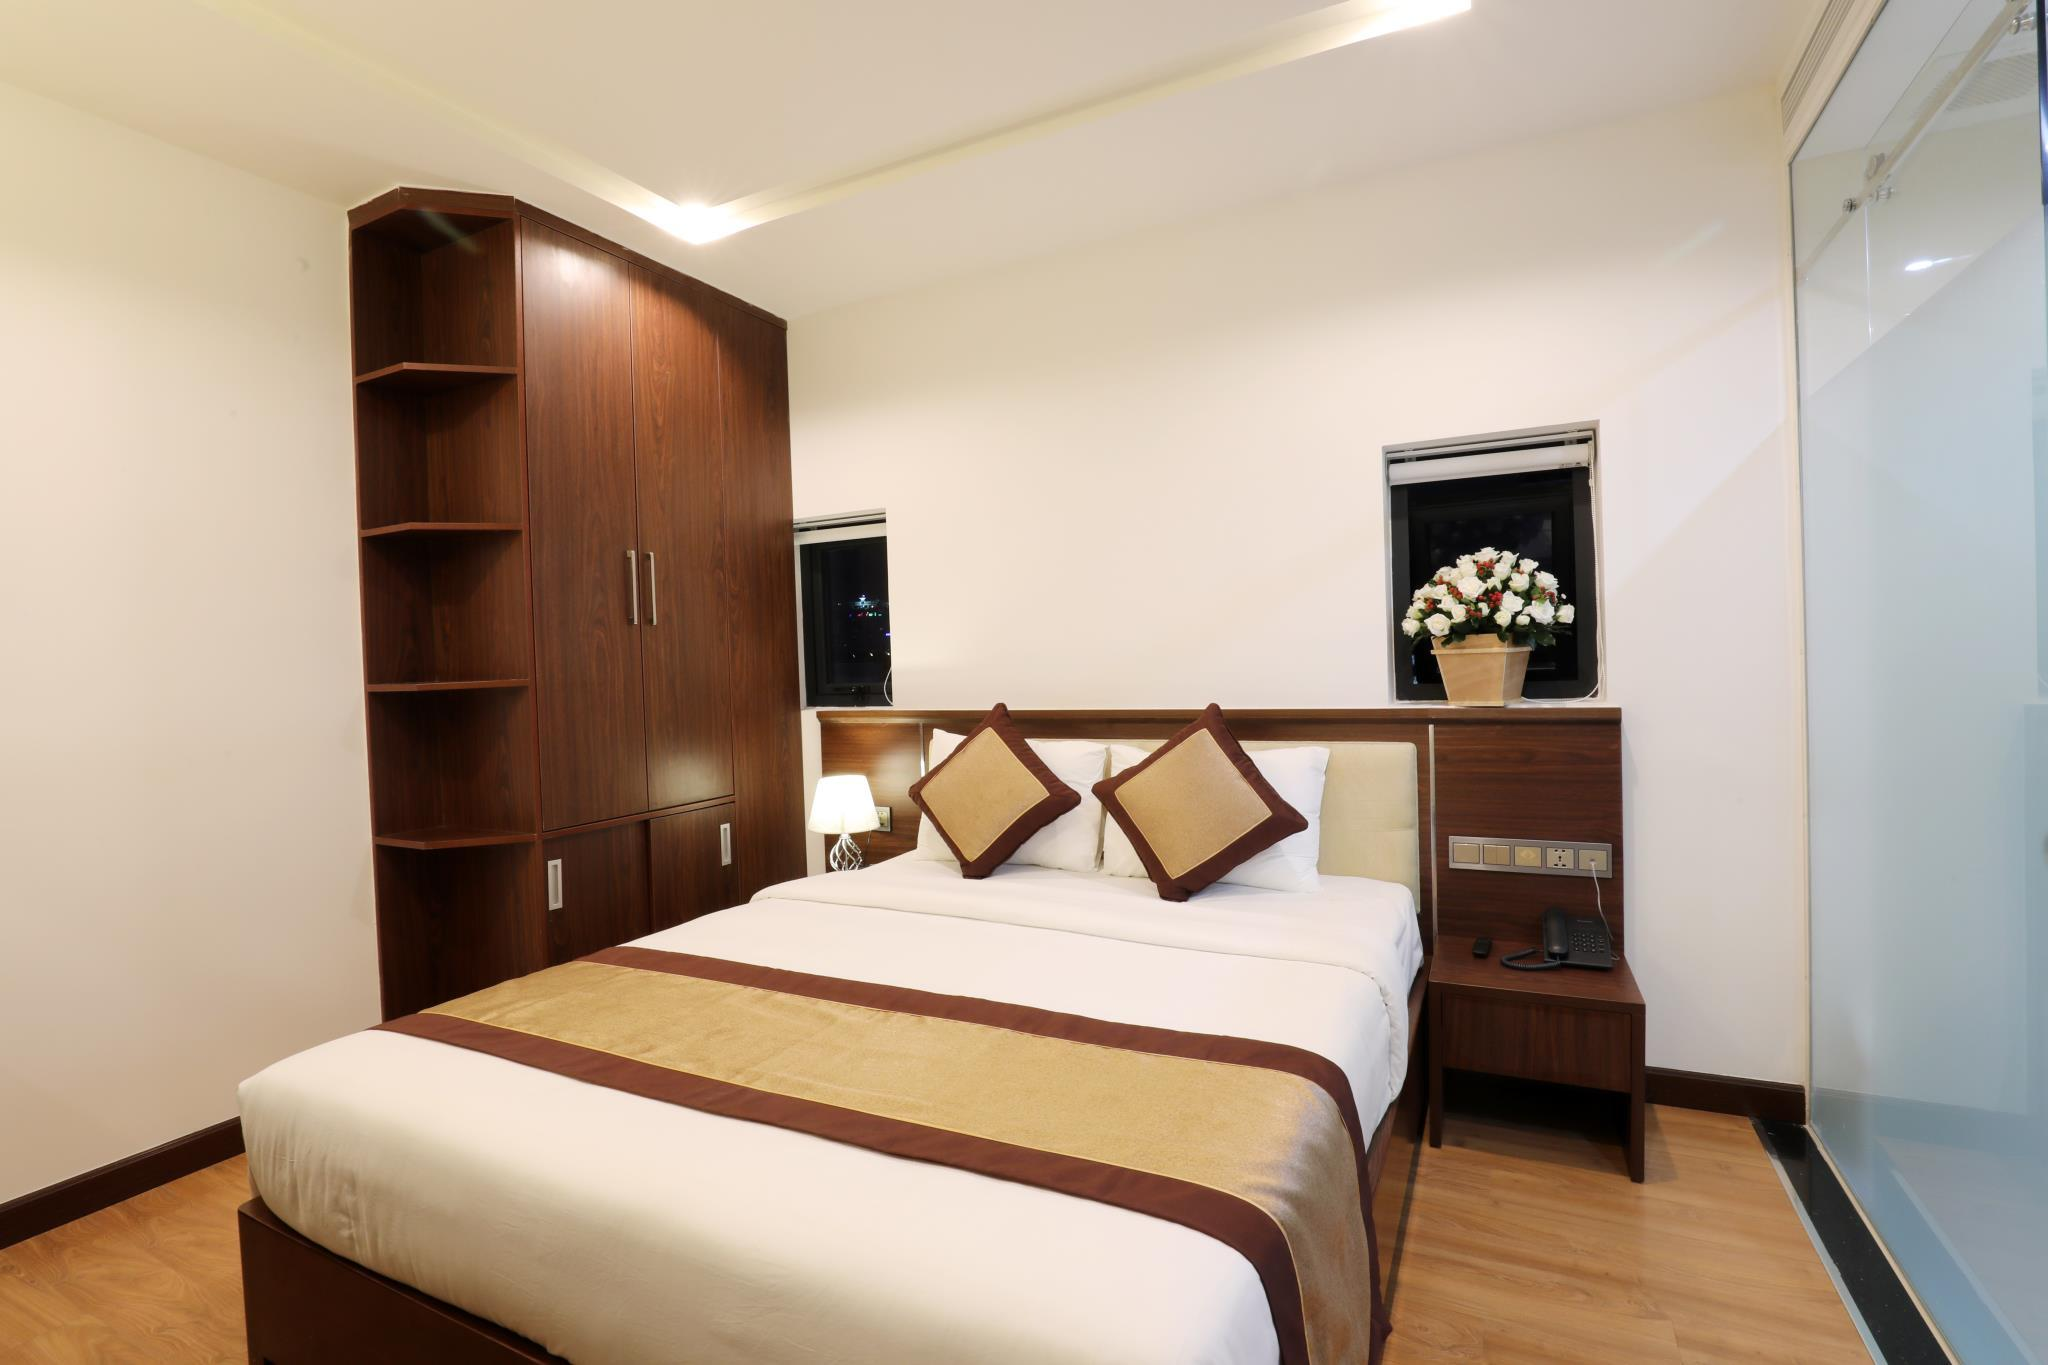 Superior Ranjang Double dengan Jendela (Superior Double Bed with Window)